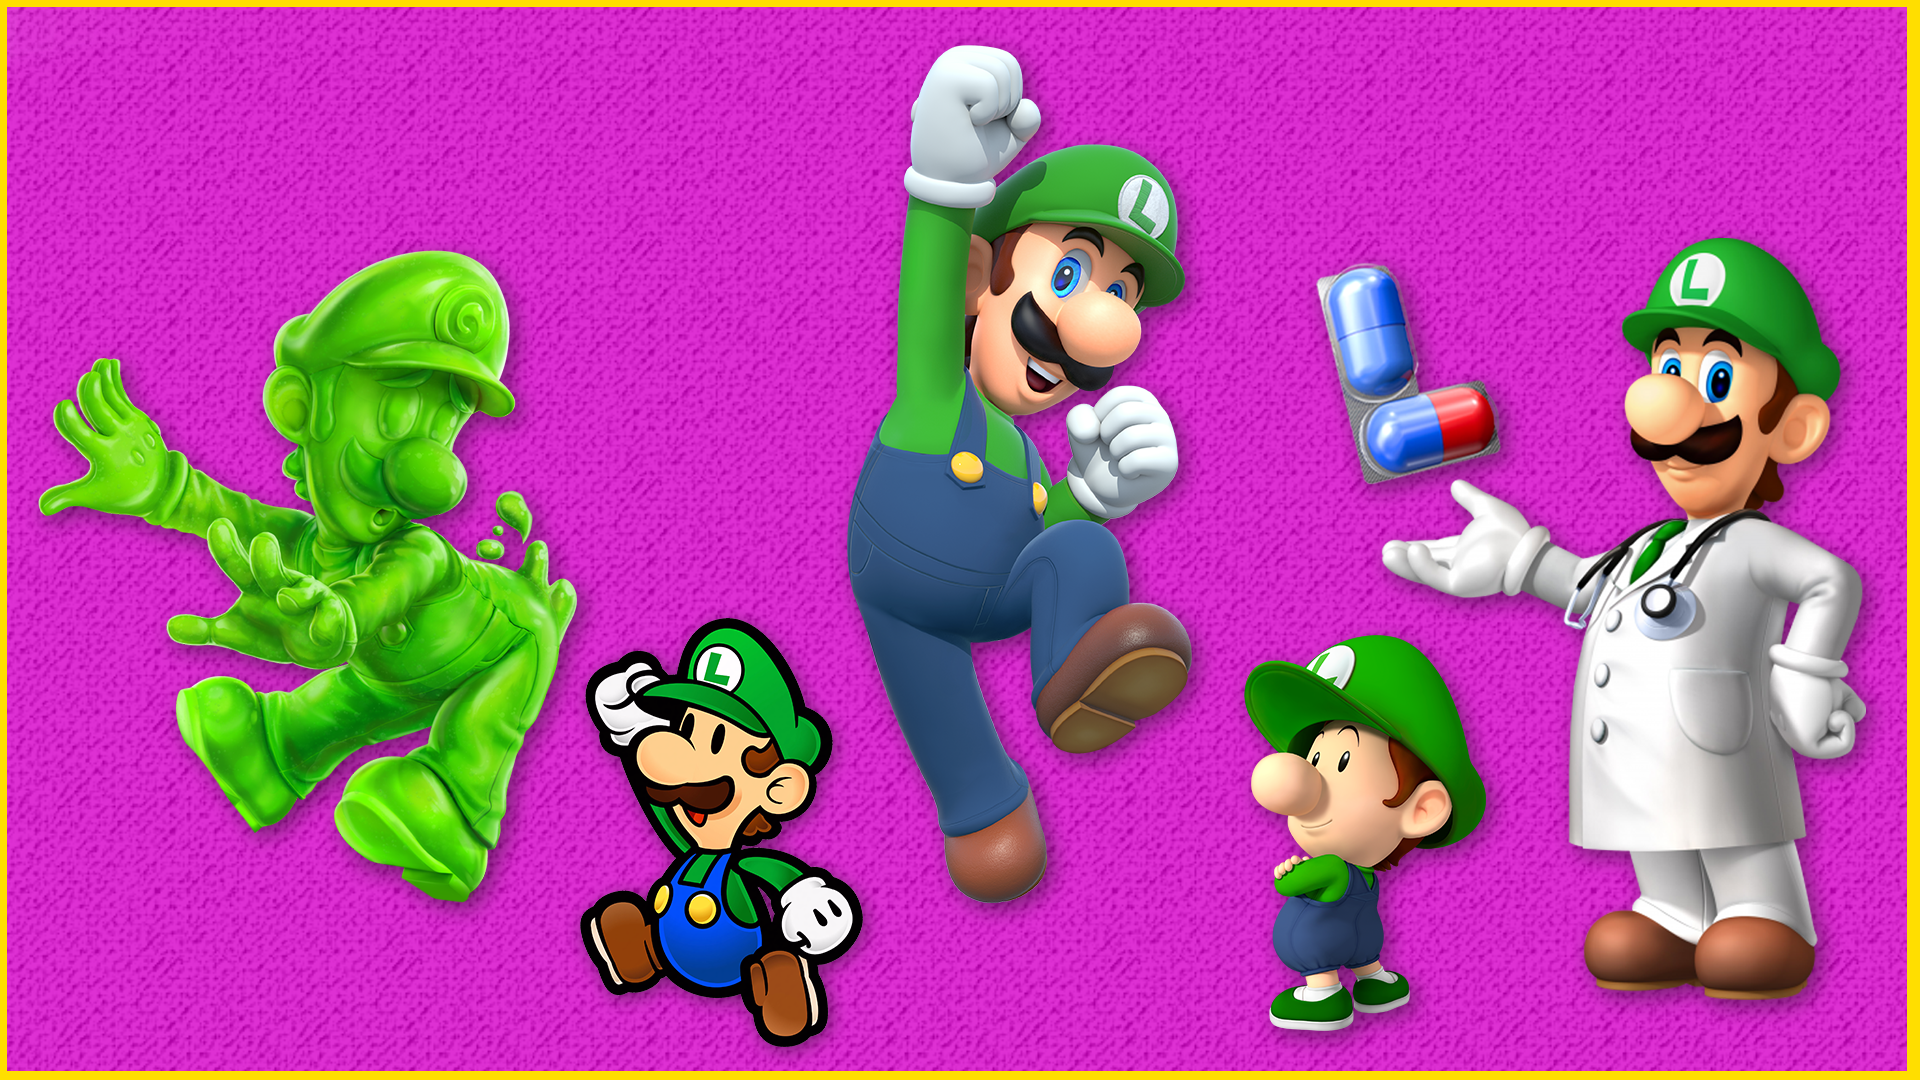 Every Luigi, Ranked